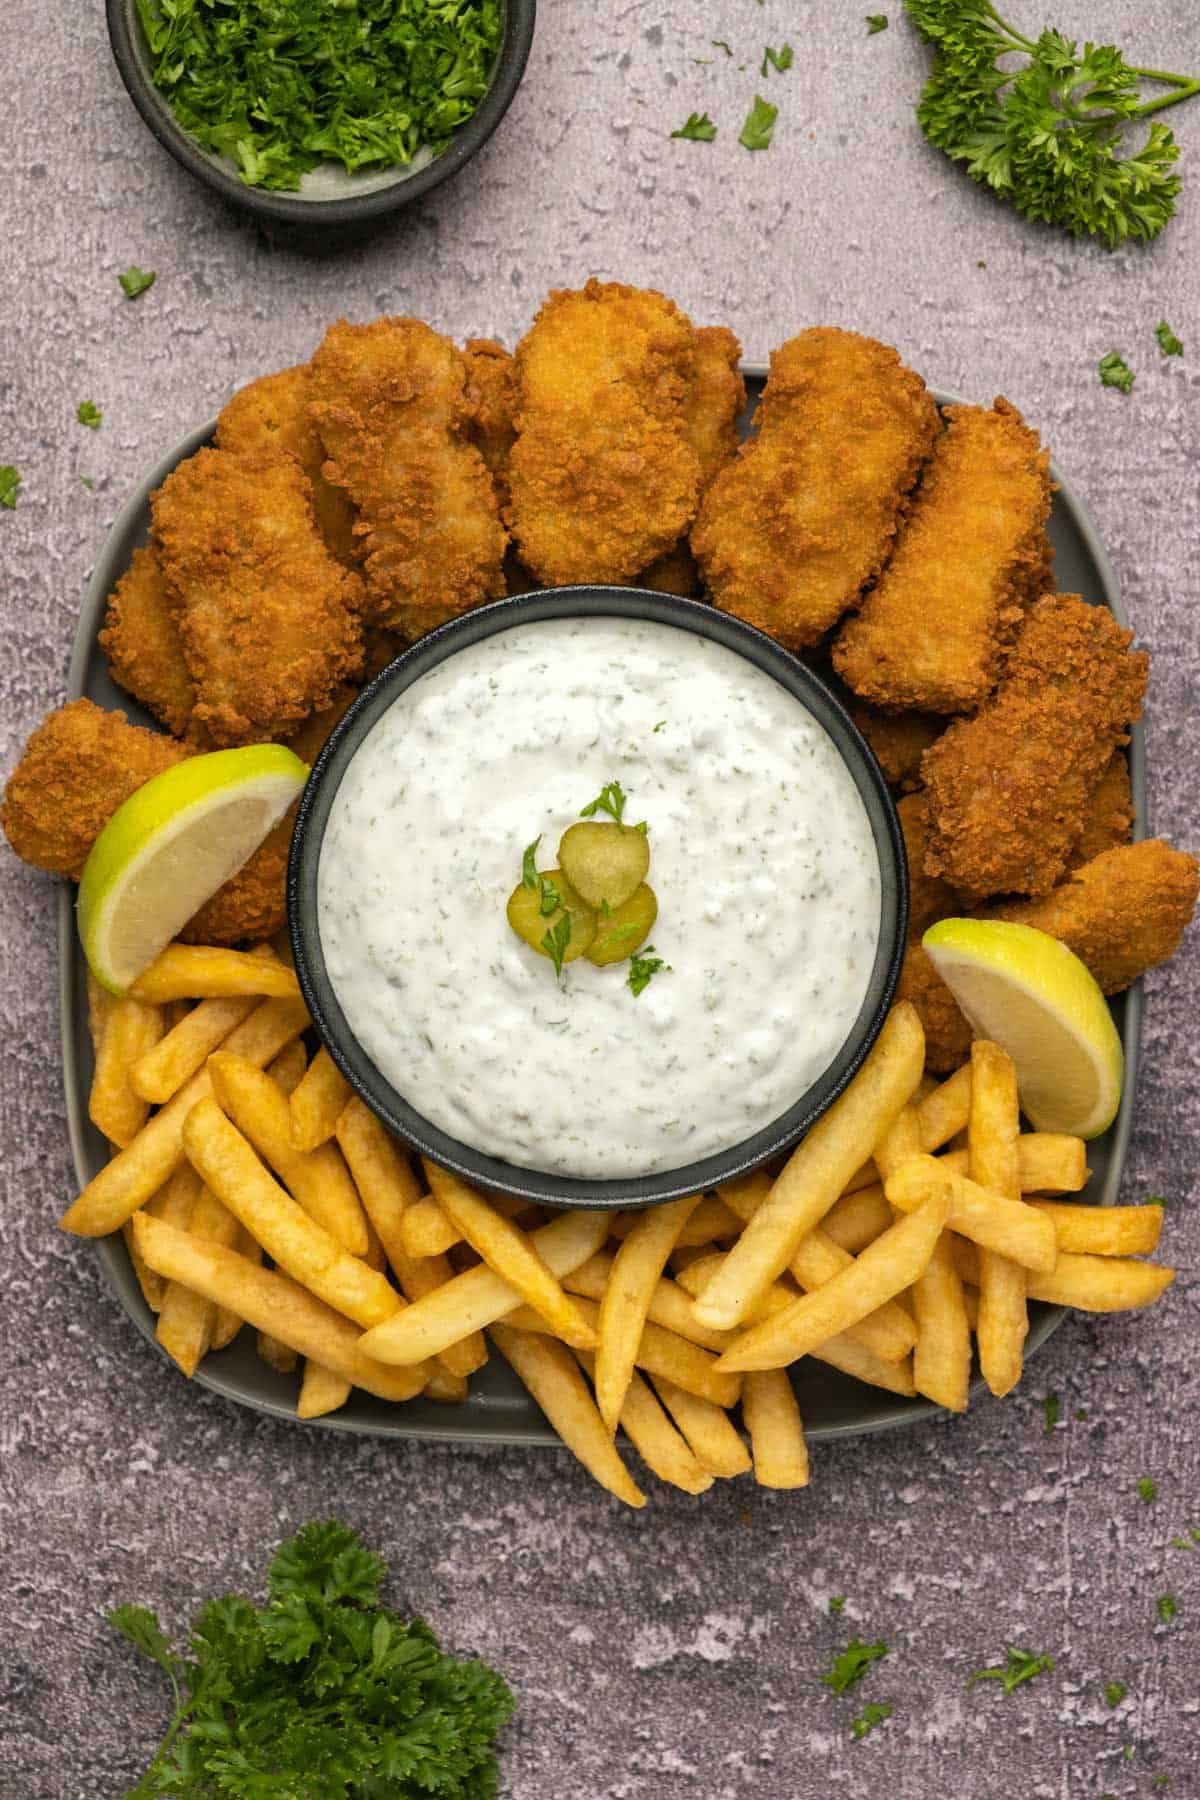 Homemade tartar sauce in a black bowl with fries and nuggets.